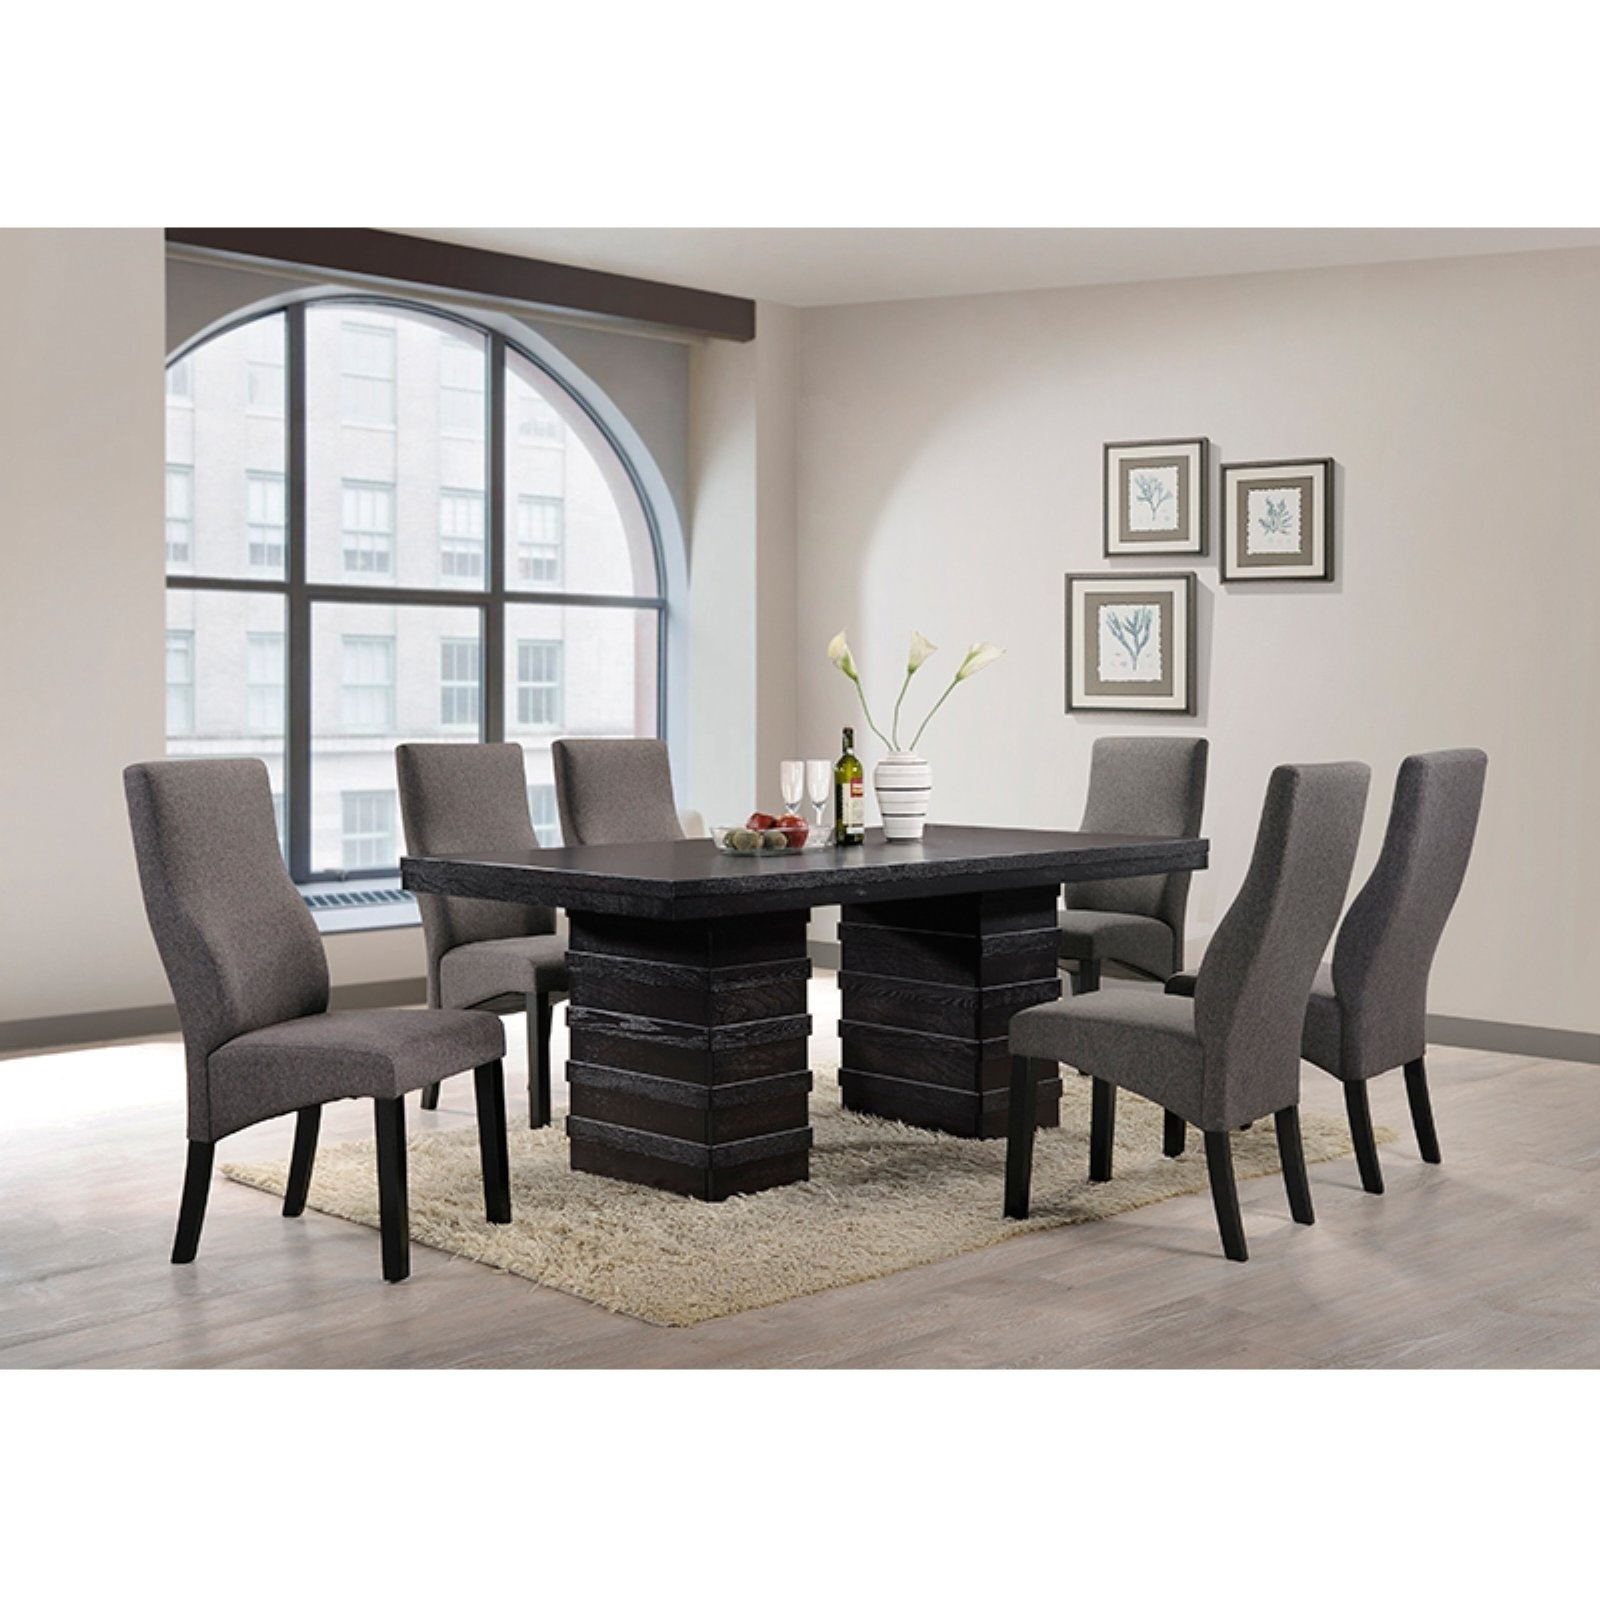 K & B Furniture Norwood Dining Table – Walmart Throughout Preferred Norwood 9 Piece Rectangle Extension Dining Sets (Gallery 7 of 25)